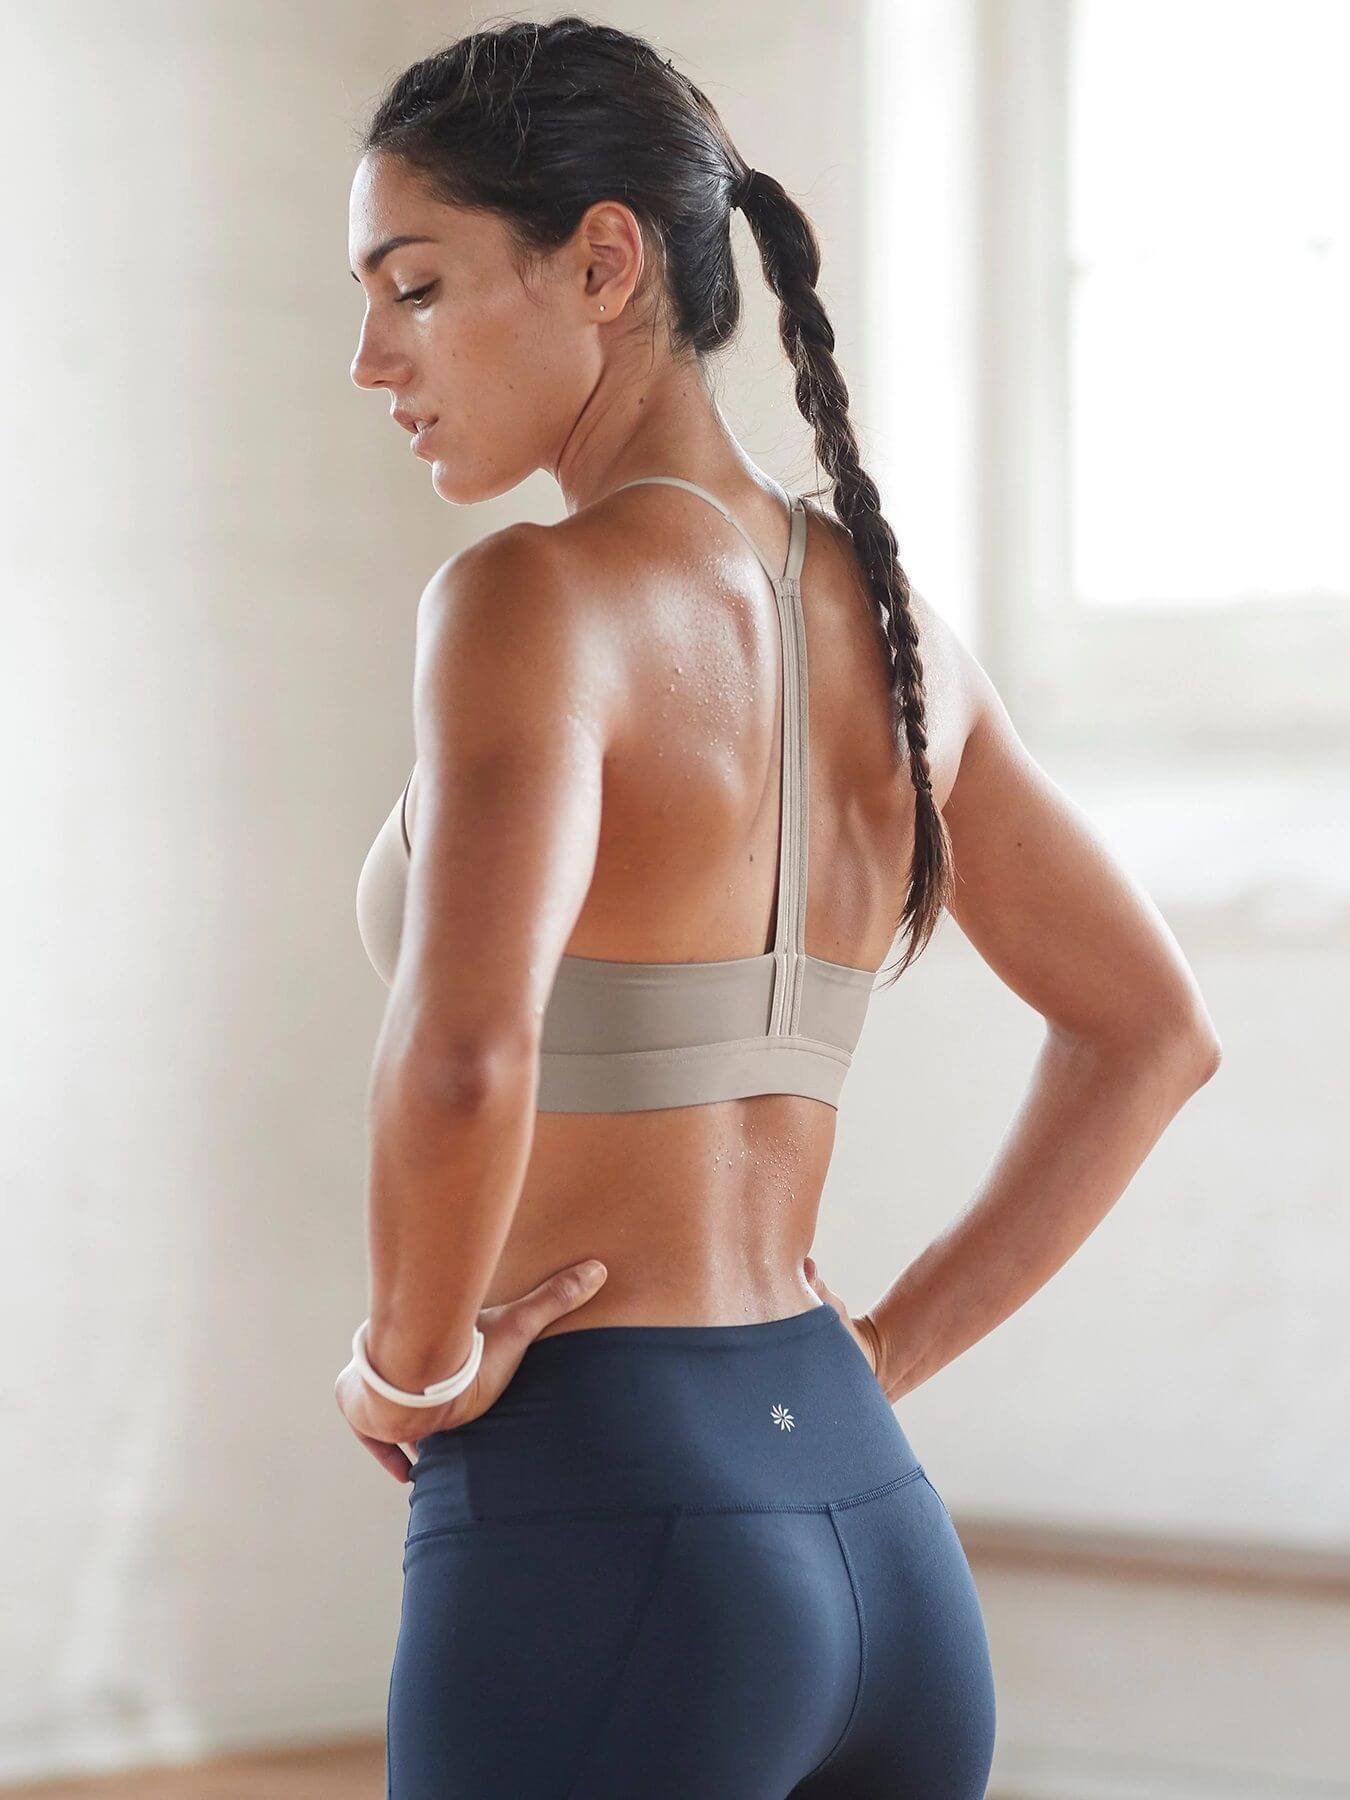 Allison Stokke sexy ass